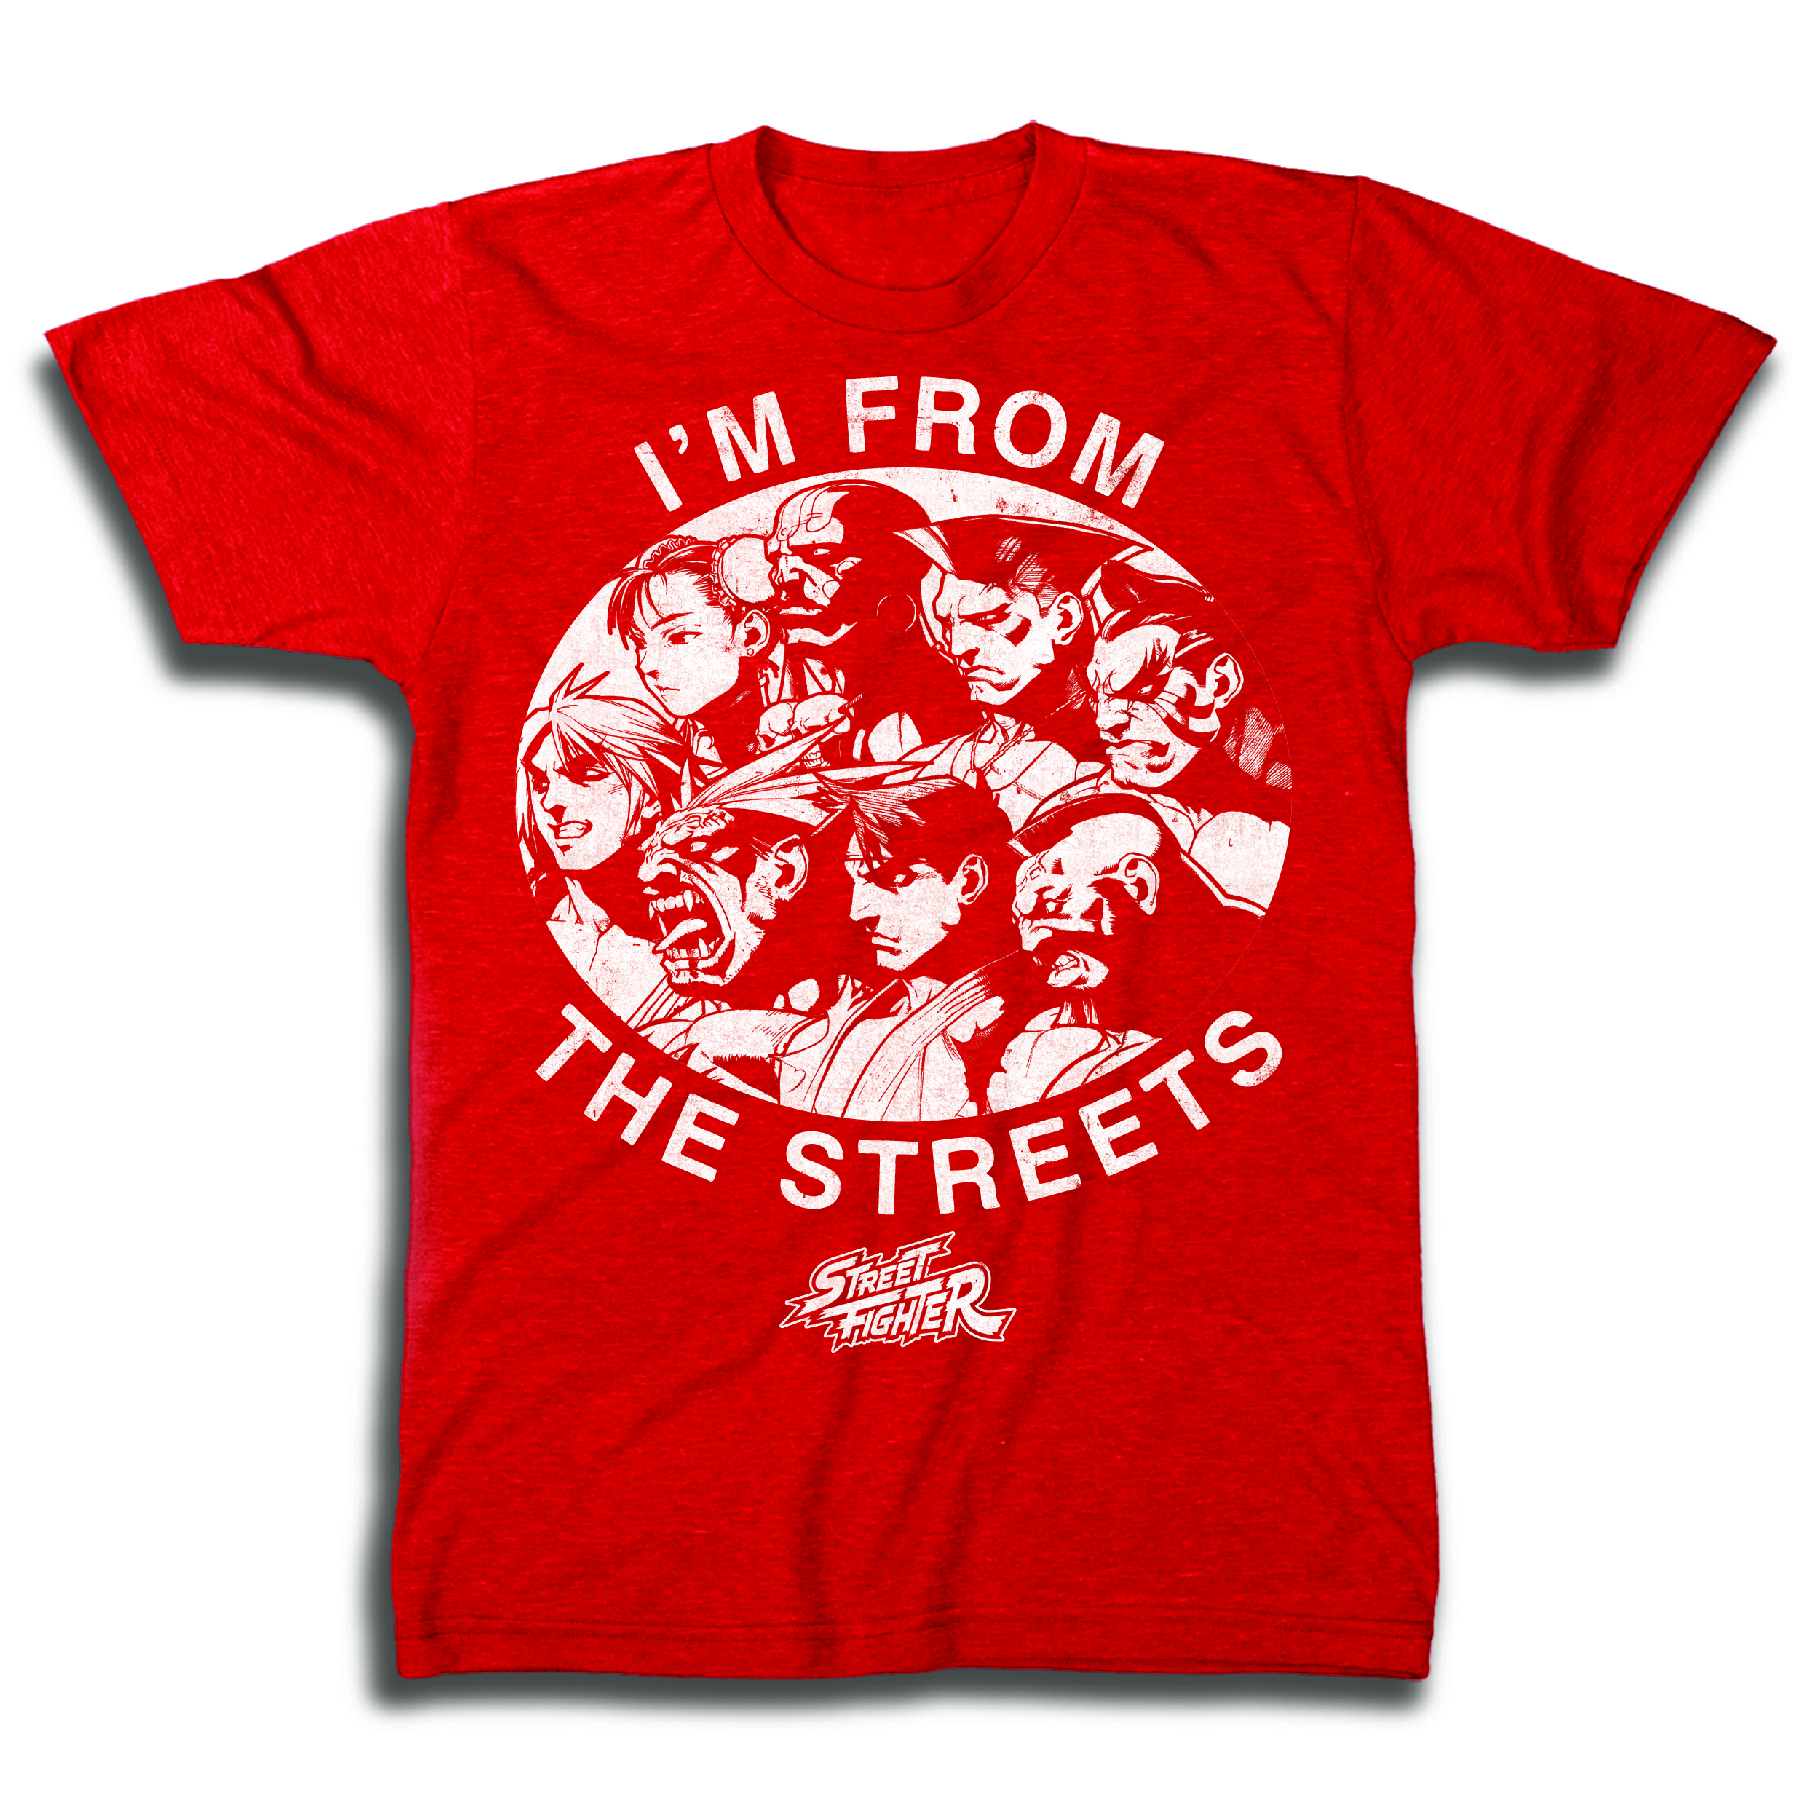 STREET FIGHTER THE STREETS PX RED T/S SM